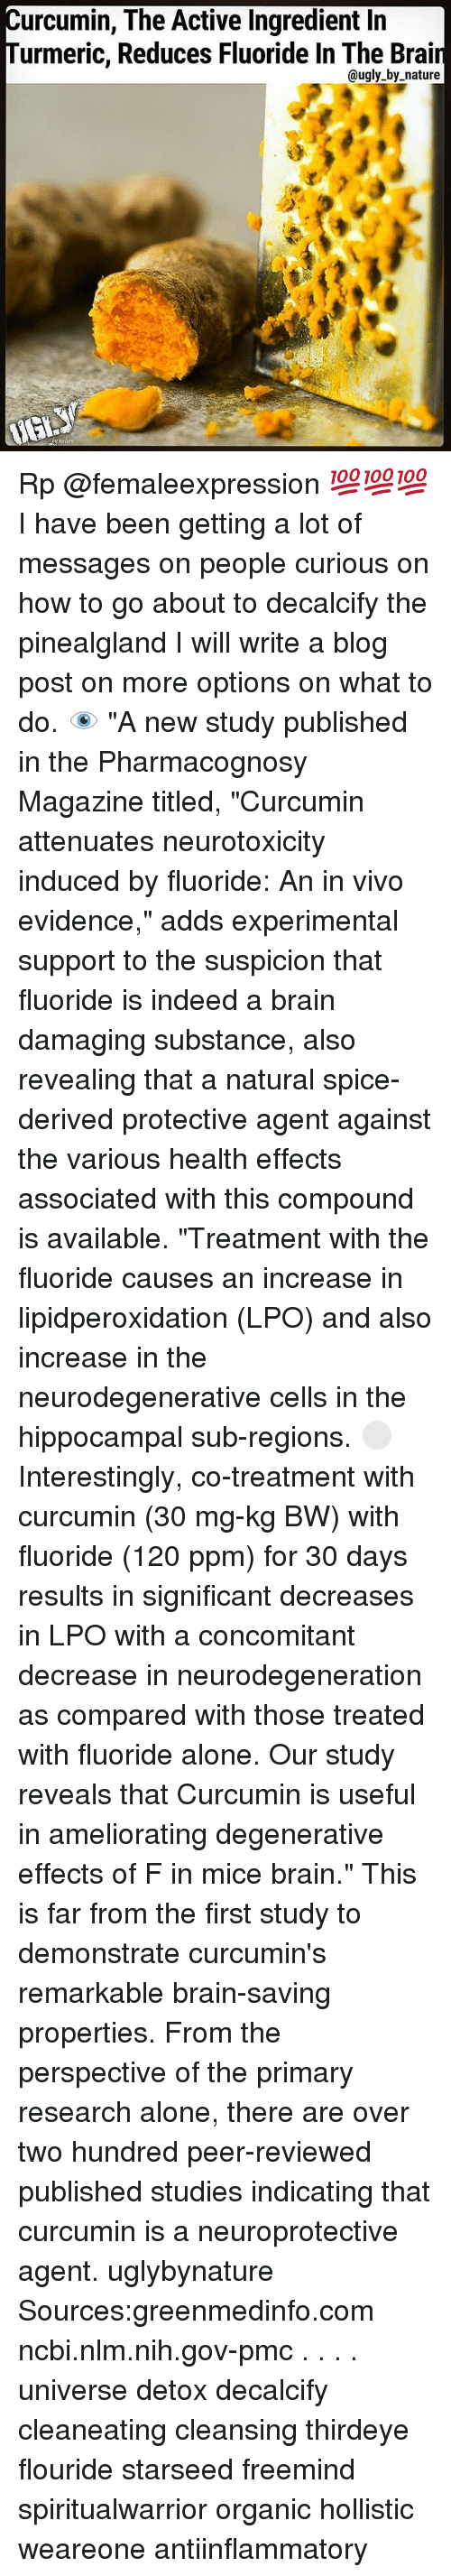 "Being Alone, Memes, and Ugly: urcumin, The Active Ingredient lin  urmeric, Reduces Fluoride In The Brai  @ugly by nature Rp @femaleexpression 💯💯💯 I have been getting a lot of messages on people curious on how to go about to decalcify the pinealgland I will write a blog post on more options on what to do. 👁 ""A new study published in the Pharmacognosy Magazine titled, ""Curcumin attenuates neurotoxicity induced by fluoride: An in vivo evidence,"" adds experimental support to the suspicion that fluoride is indeed a brain damaging substance, also revealing that a natural spice-derived protective agent against the various health effects associated with this compound is available. ""Treatment with the fluoride causes an increase in lipidperoxidation (LPO) and also increase in the neurodegenerative cells in the hippocampal sub-regions. ⚪️ Interestingly, co-treatment with curcumin (30 mg-kg BW) with fluoride (120 ppm) for 30 days results in significant decreases in LPO with a concomitant decrease in neurodegeneration as compared with those treated with fluoride alone. Our study reveals that Curcumin is useful in ameliorating degenerative effects of F in mice brain."" This is far from the first study to demonstrate curcumin's remarkable brain-saving properties. From the perspective of the primary research alone, there are over two hundred peer-reviewed published studies indicating that curcumin is a neuroprotective agent. uglybynature Sources:greenmedinfo.com ncbi.nlm.nih.gov-pmc . . . . universe detox decalcify cleaneating cleansing thirdeye flouride starseed freemind spiritualwarrior organic hollistic weareone antiinflammatory"